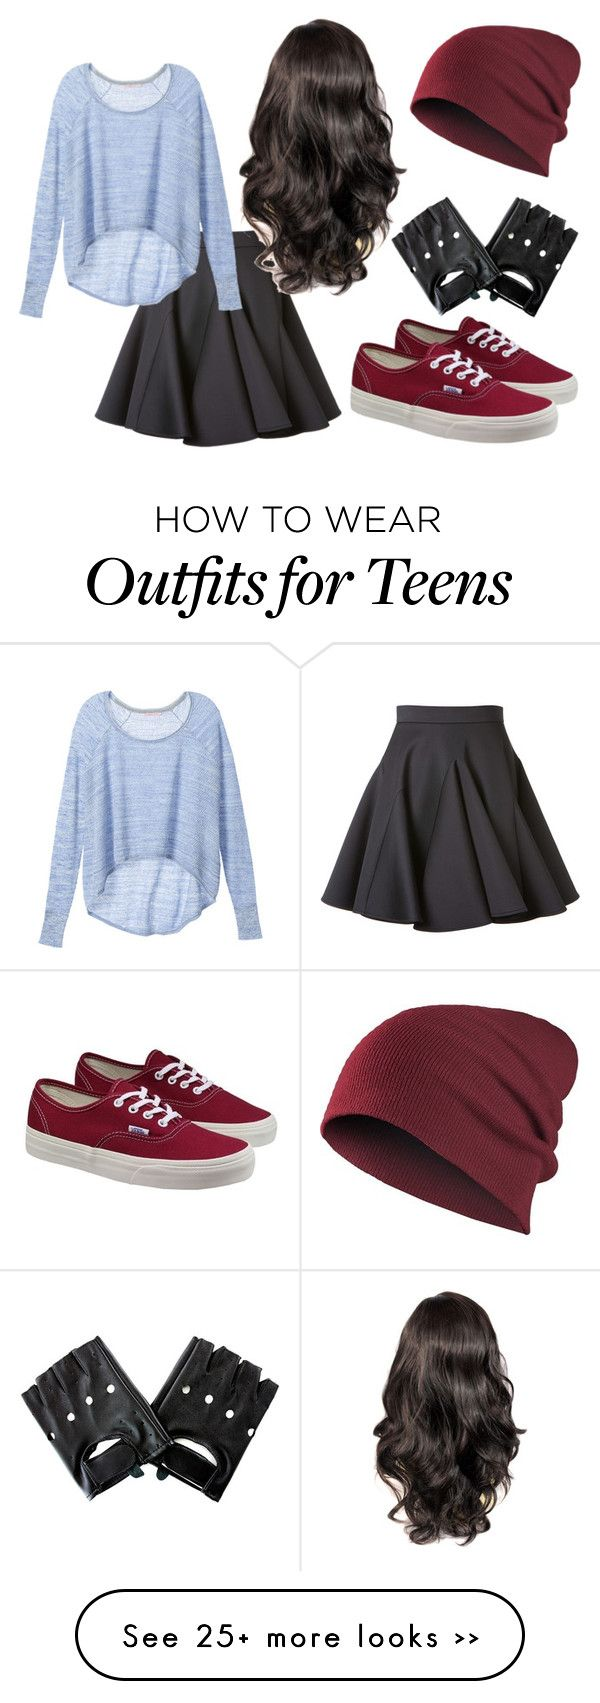 Teens can be edgy